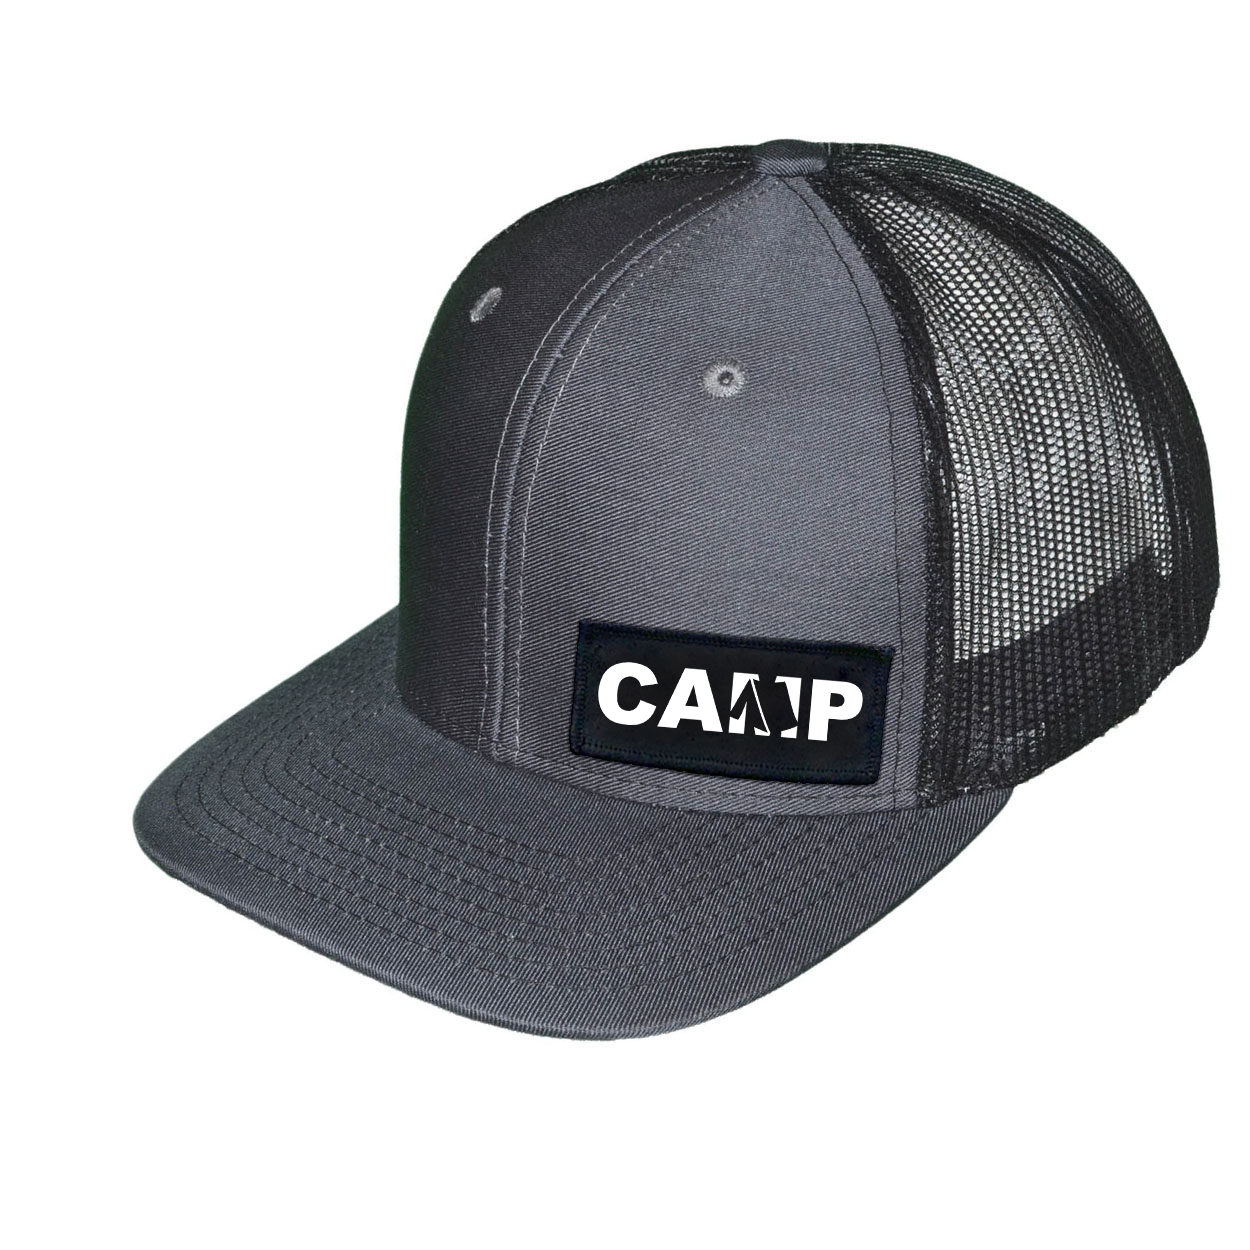 Camp Tent Logo Night Out Woven Patch Snapback Trucker Hat Dark Gray/Black (White Logo)